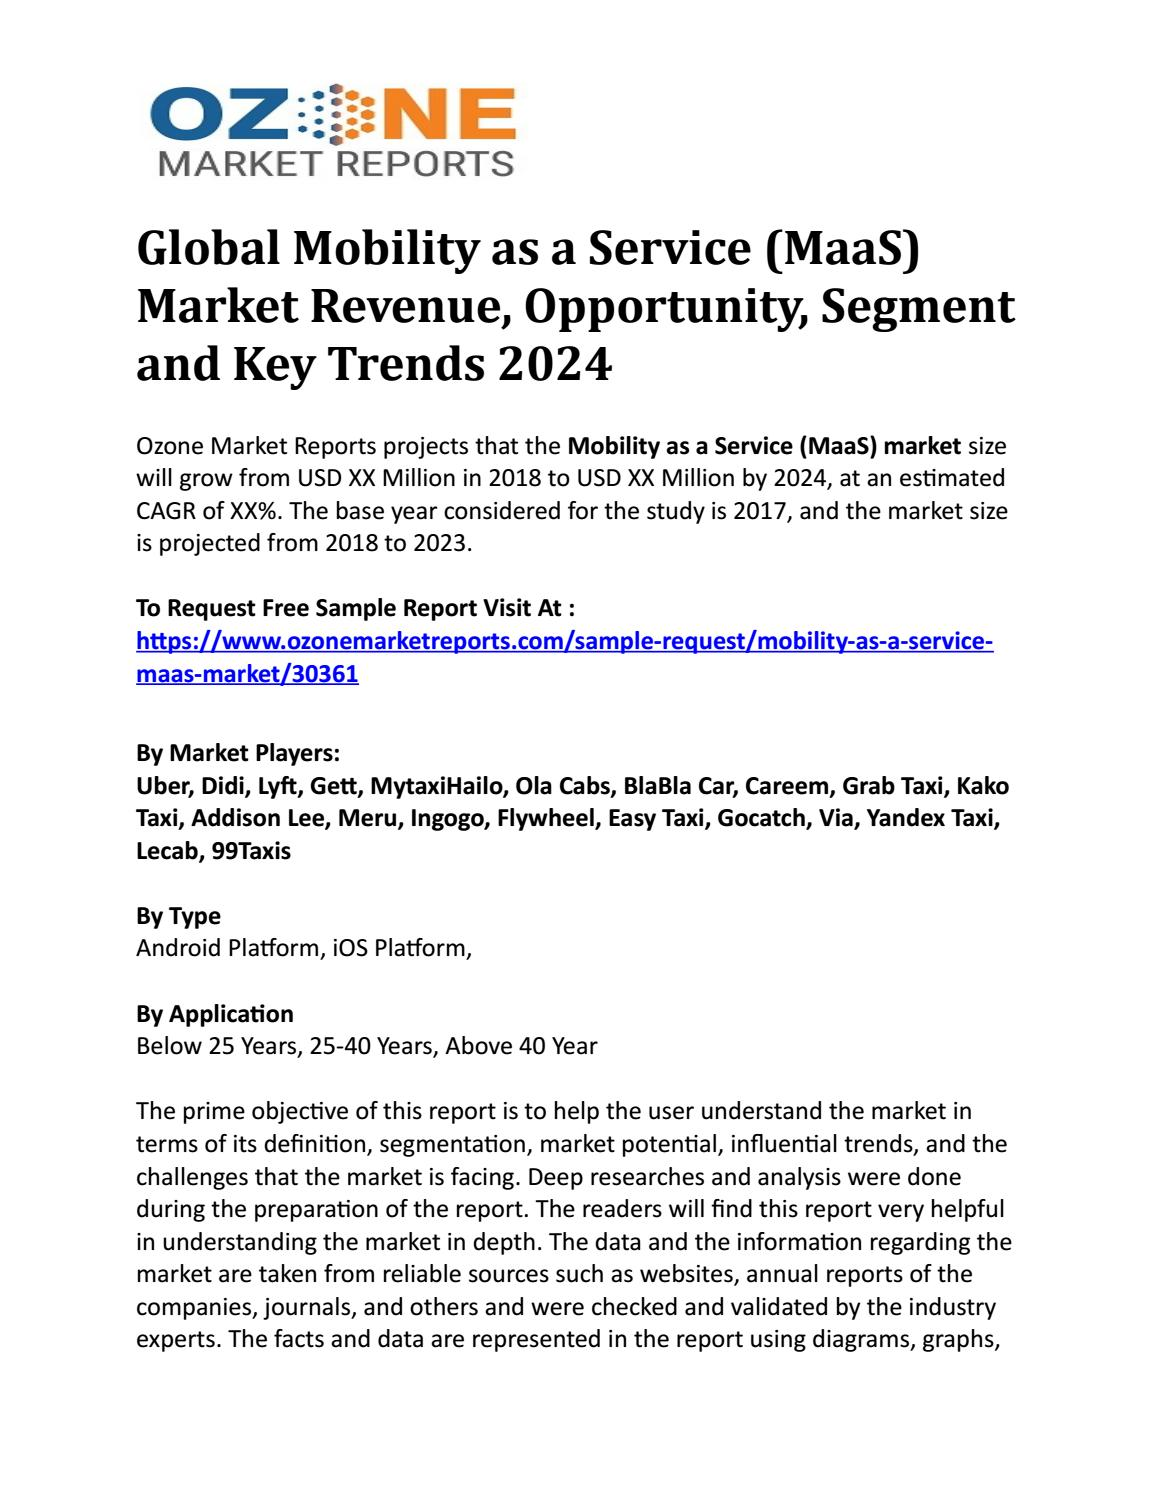 Global Mobility as a Service (MaaS) Market Revenue